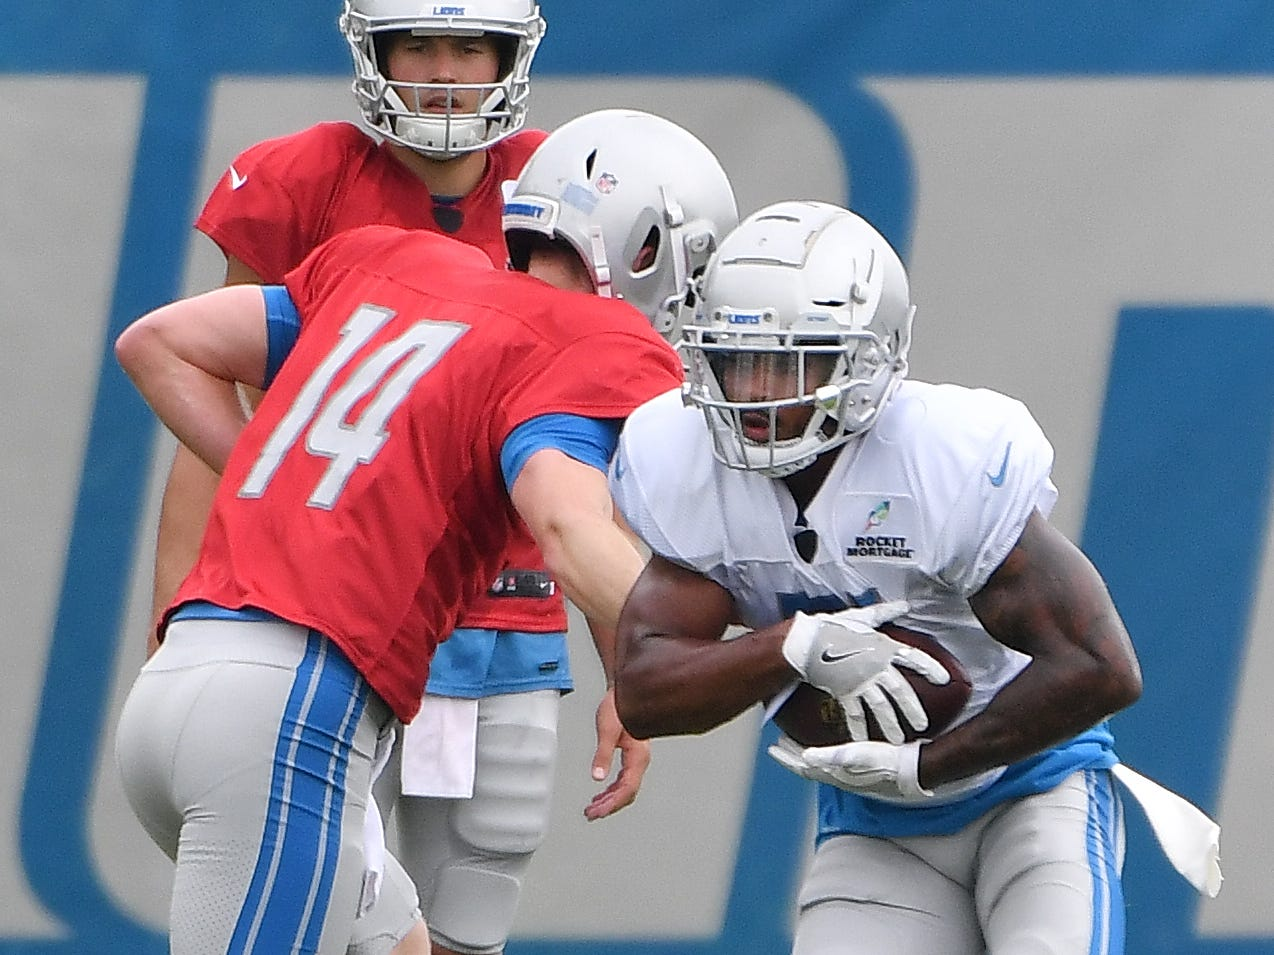 Lions quarterback Jake Rudock hands off to running back Ameer Abdullah.